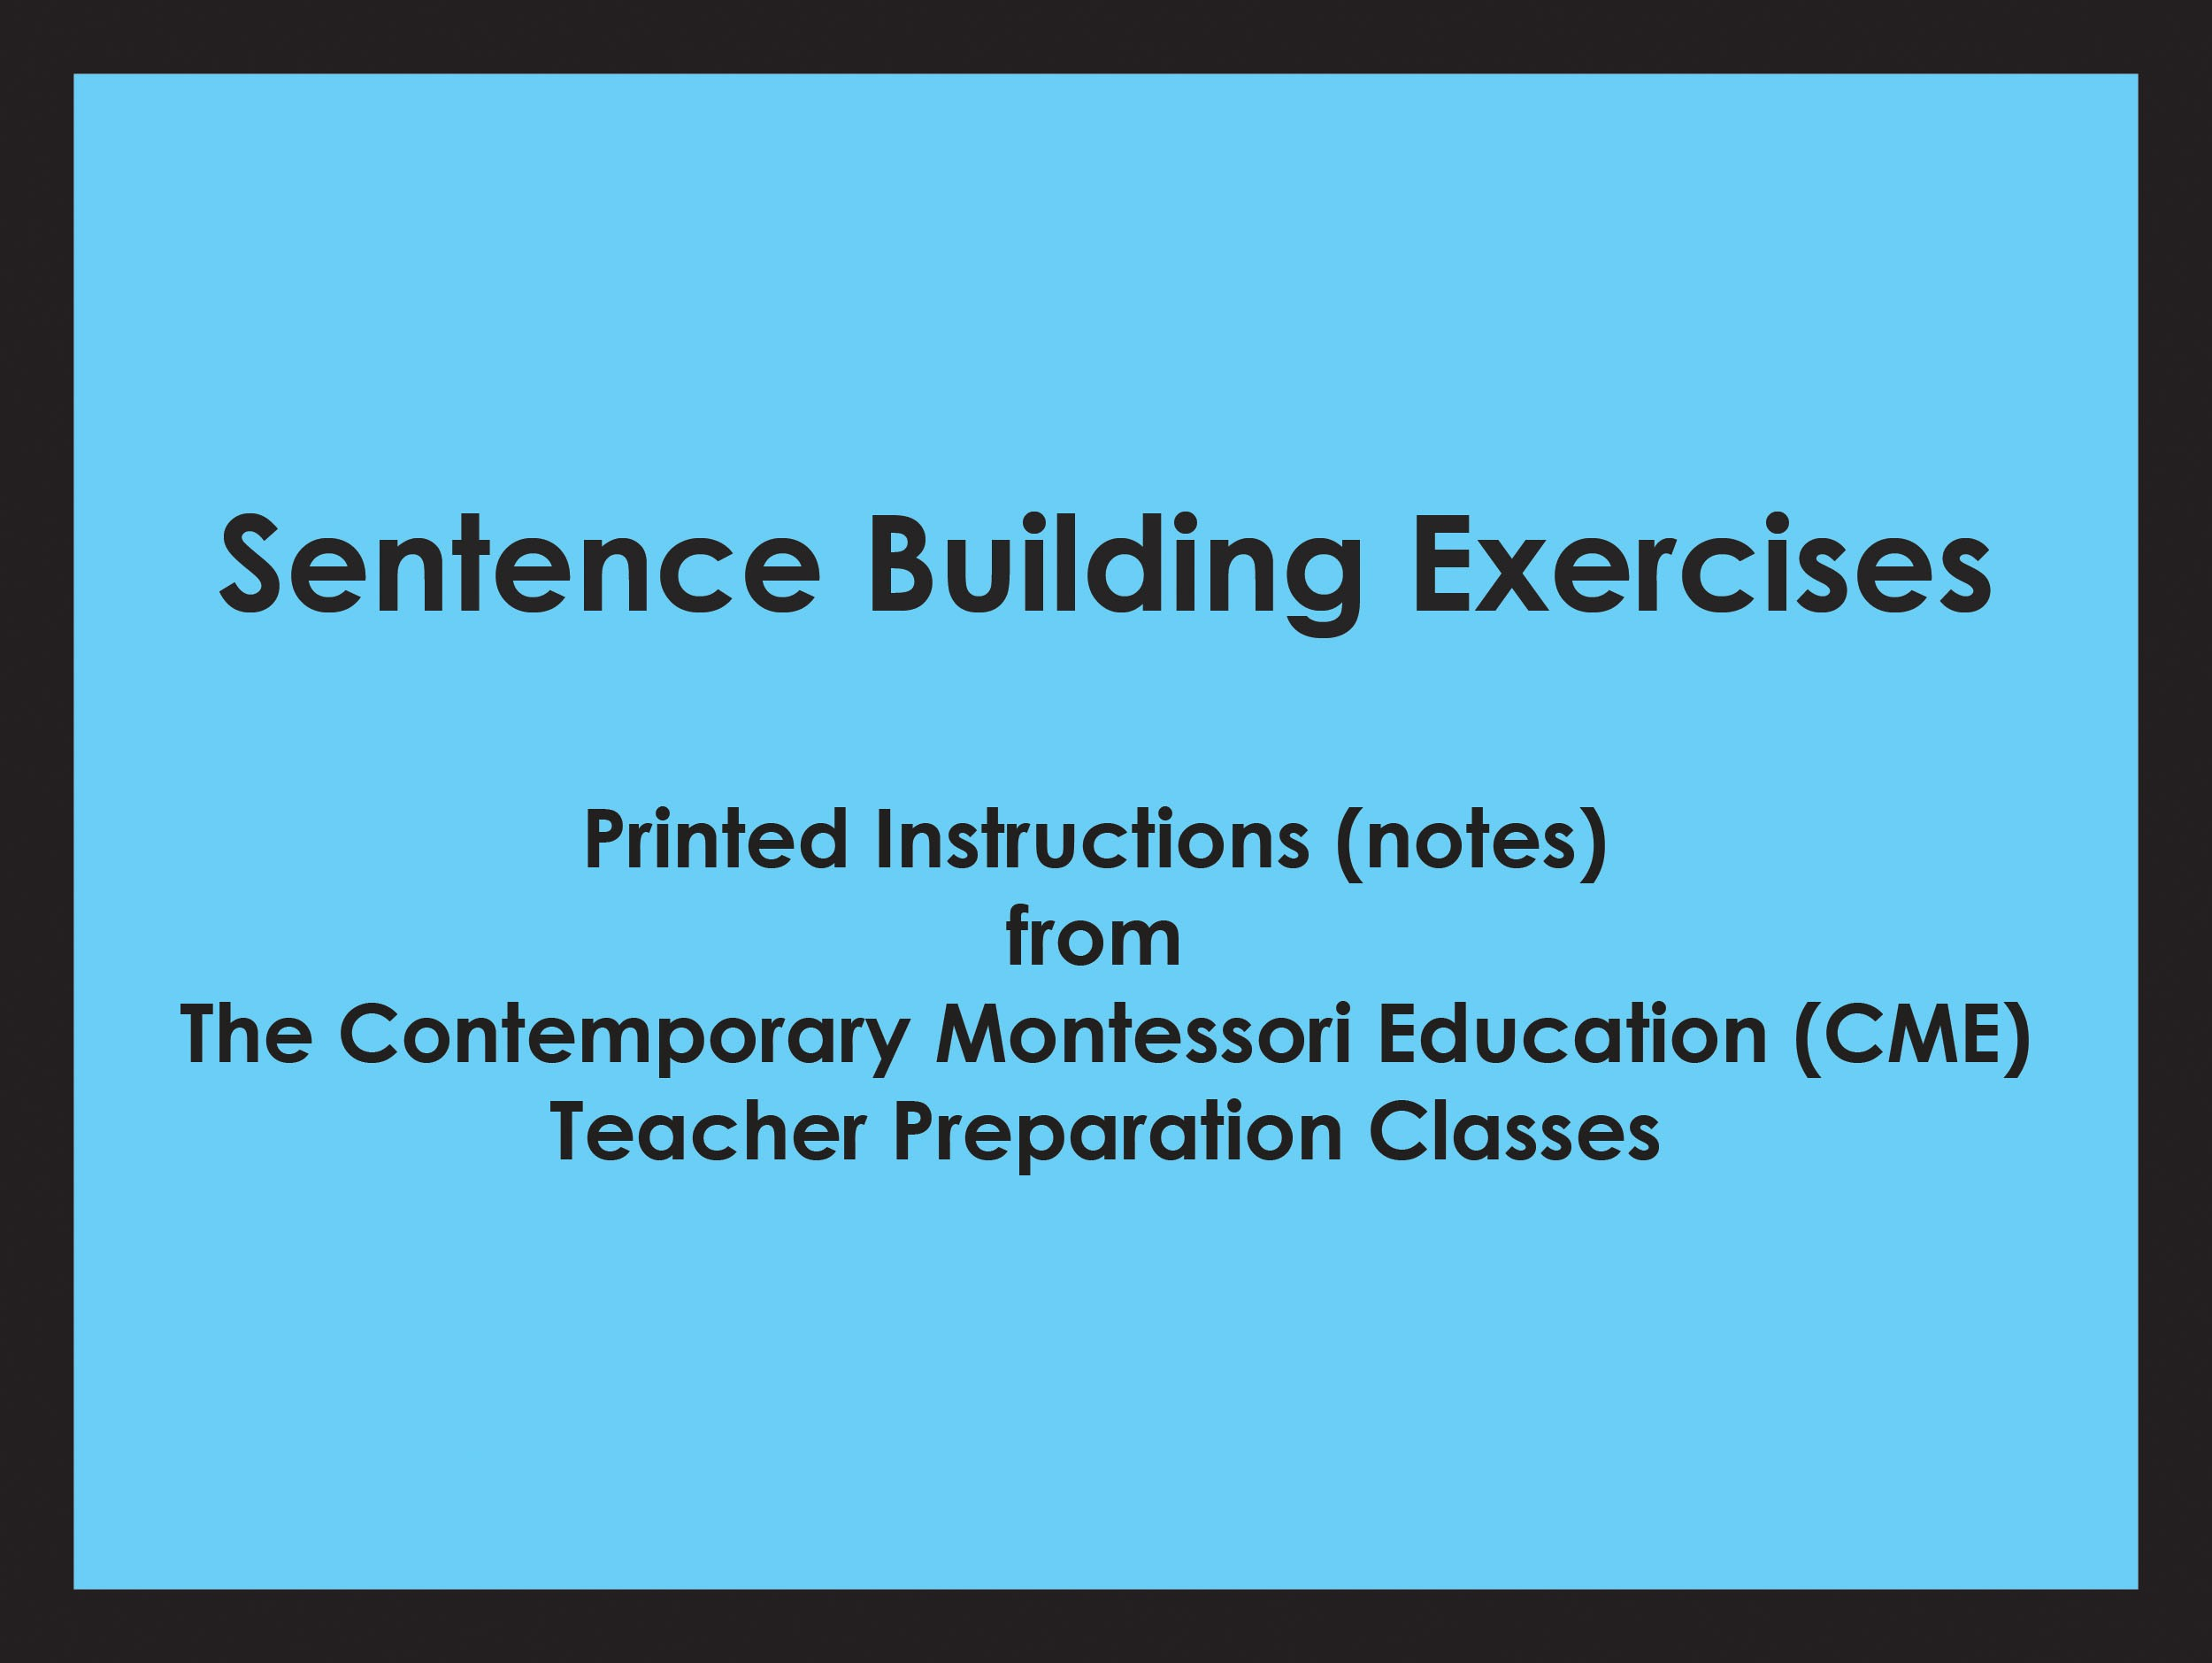 Object Boxes & Sentence Building Exercises (CME notes) ● LANG-CME-S-129